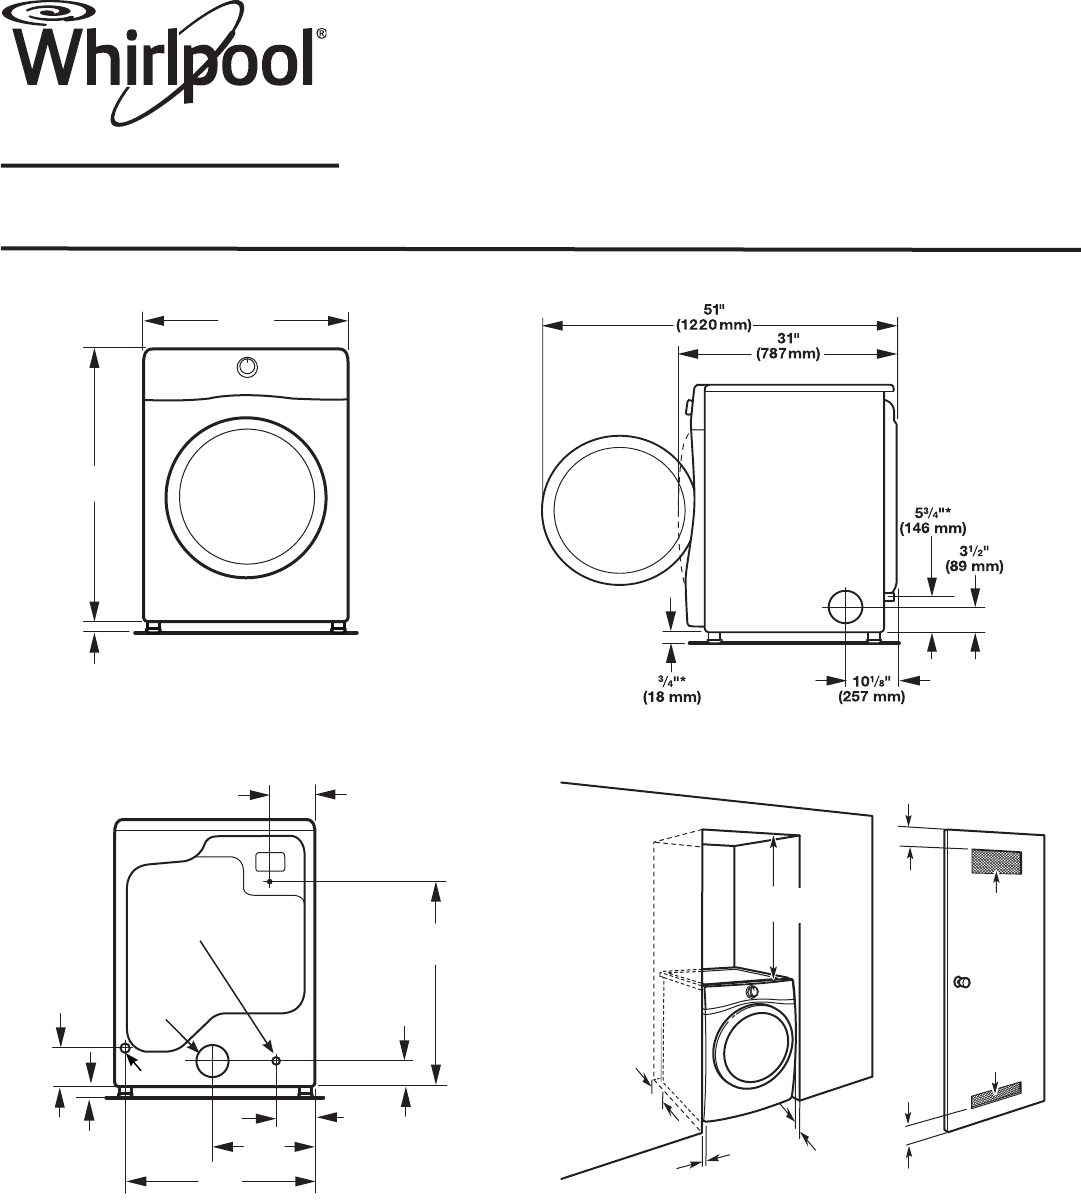 whirlpool clothes dryer wgd70heb user guide